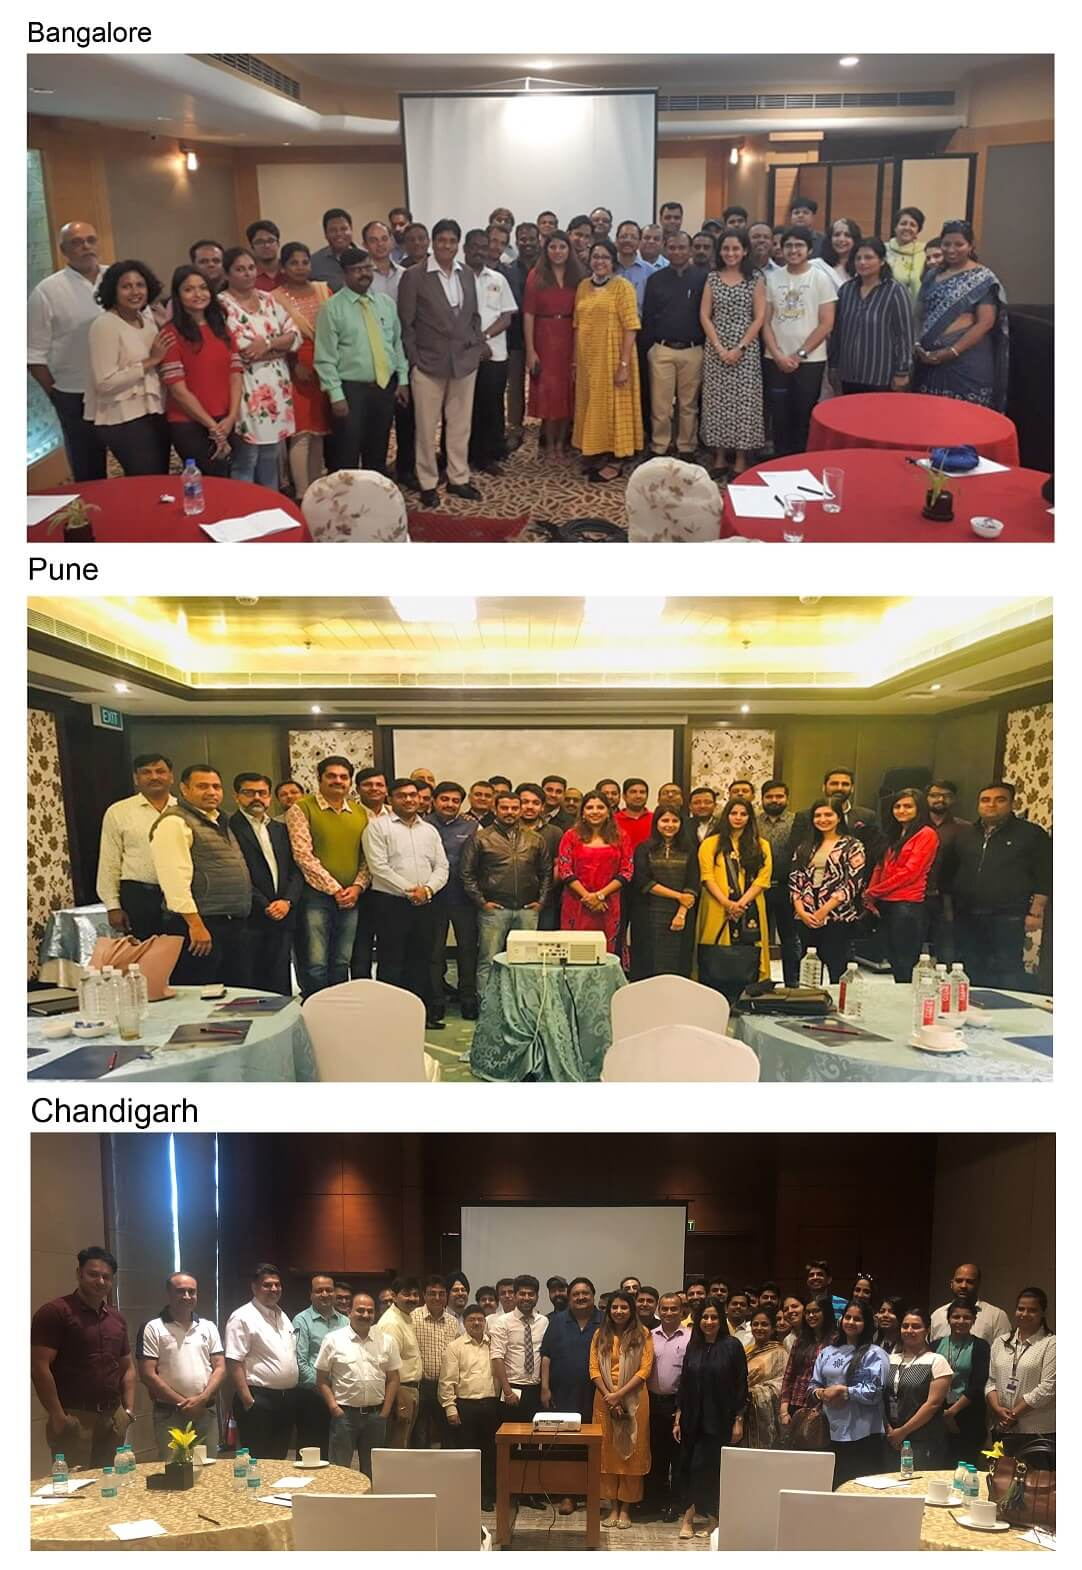 Seychelles Tourism Board strengthens trade relations in Pune, Bangalore and Chandigarh through workshops